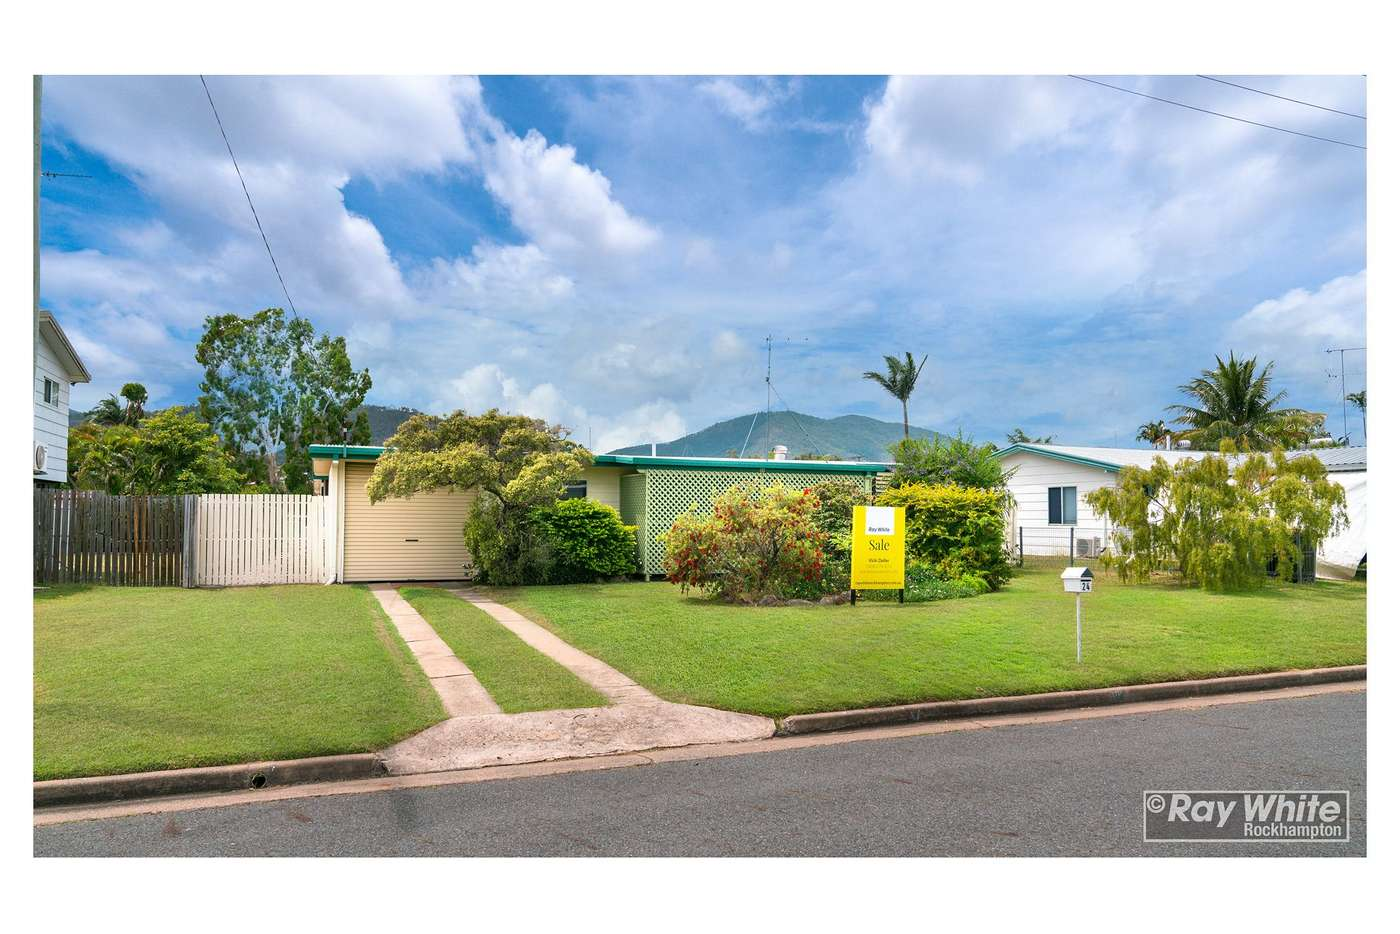 Main view of Homely house listing, 24 Lambourne Avenue, Norman Gardens QLD 4701